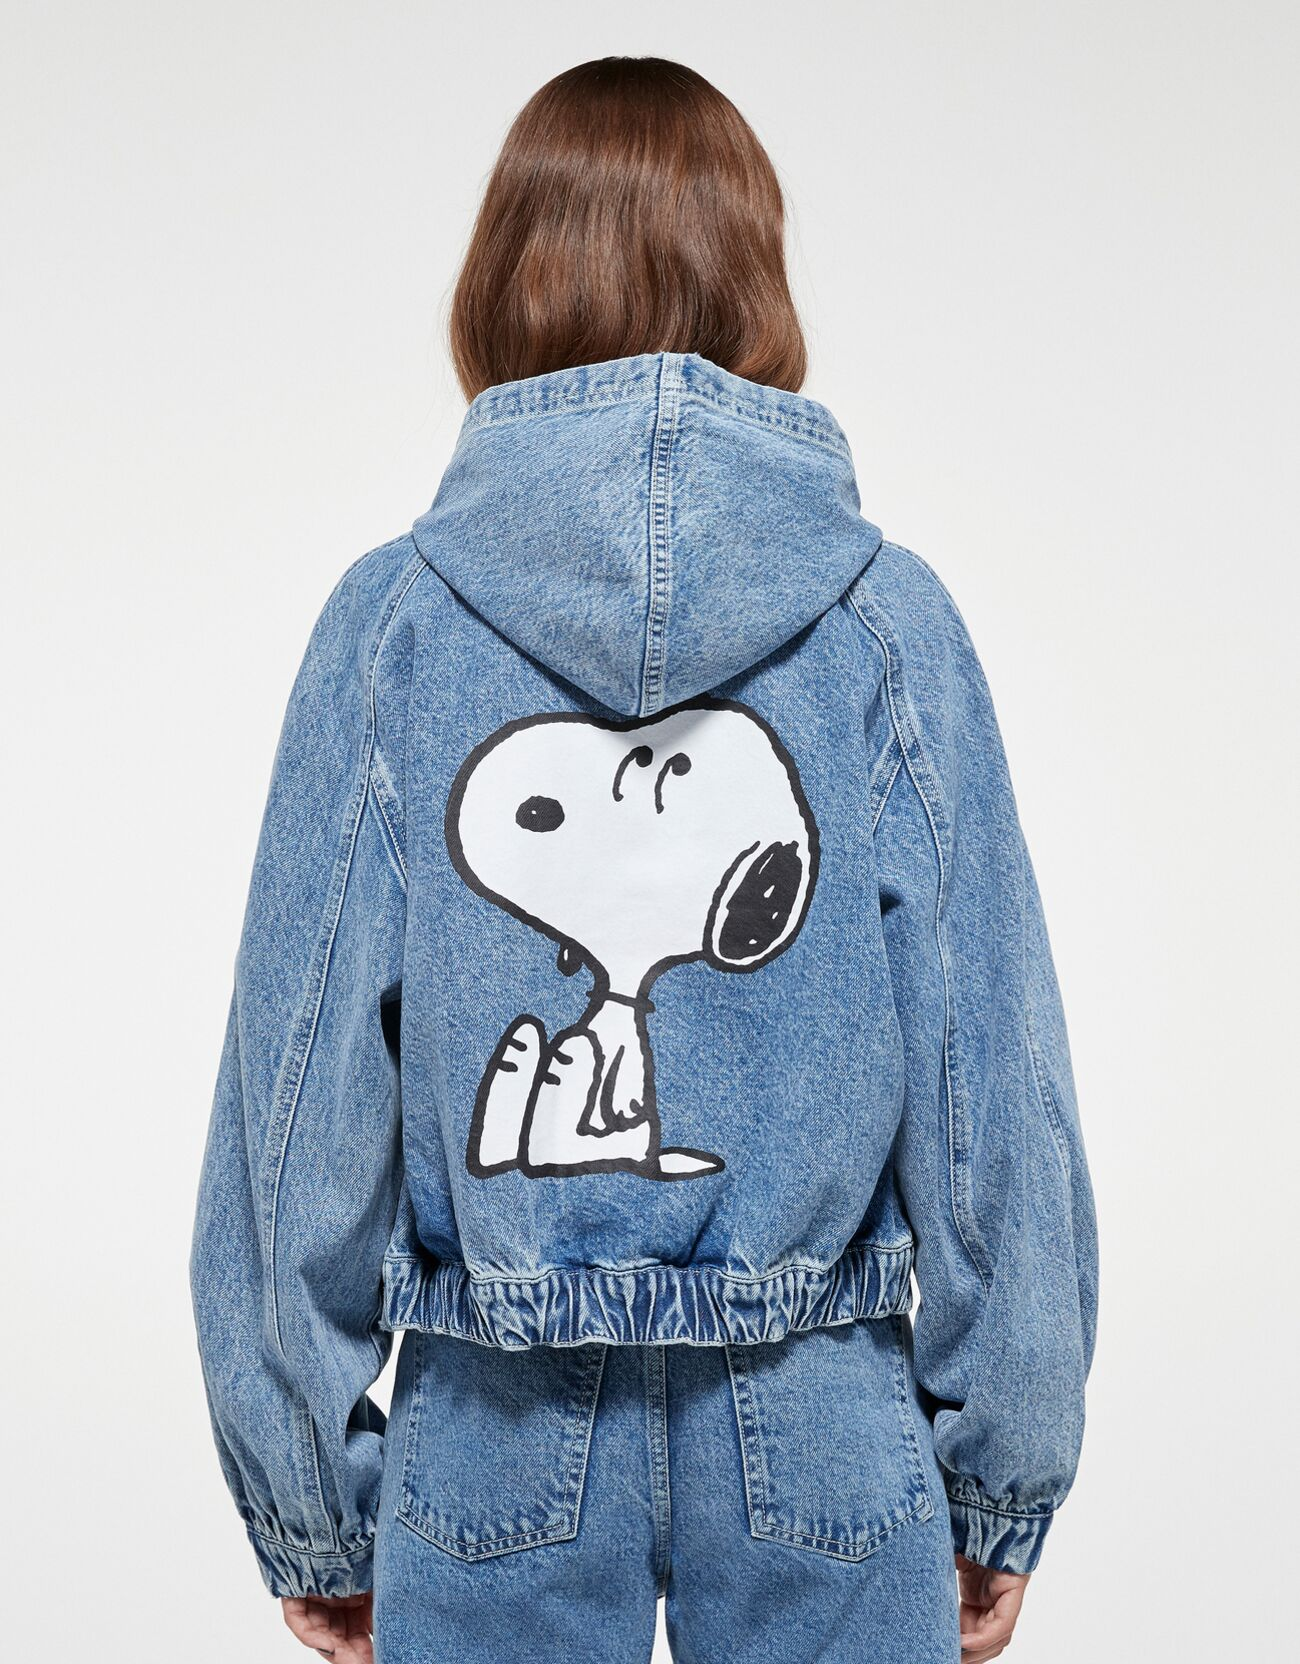 Cazadora Snoopy denim.